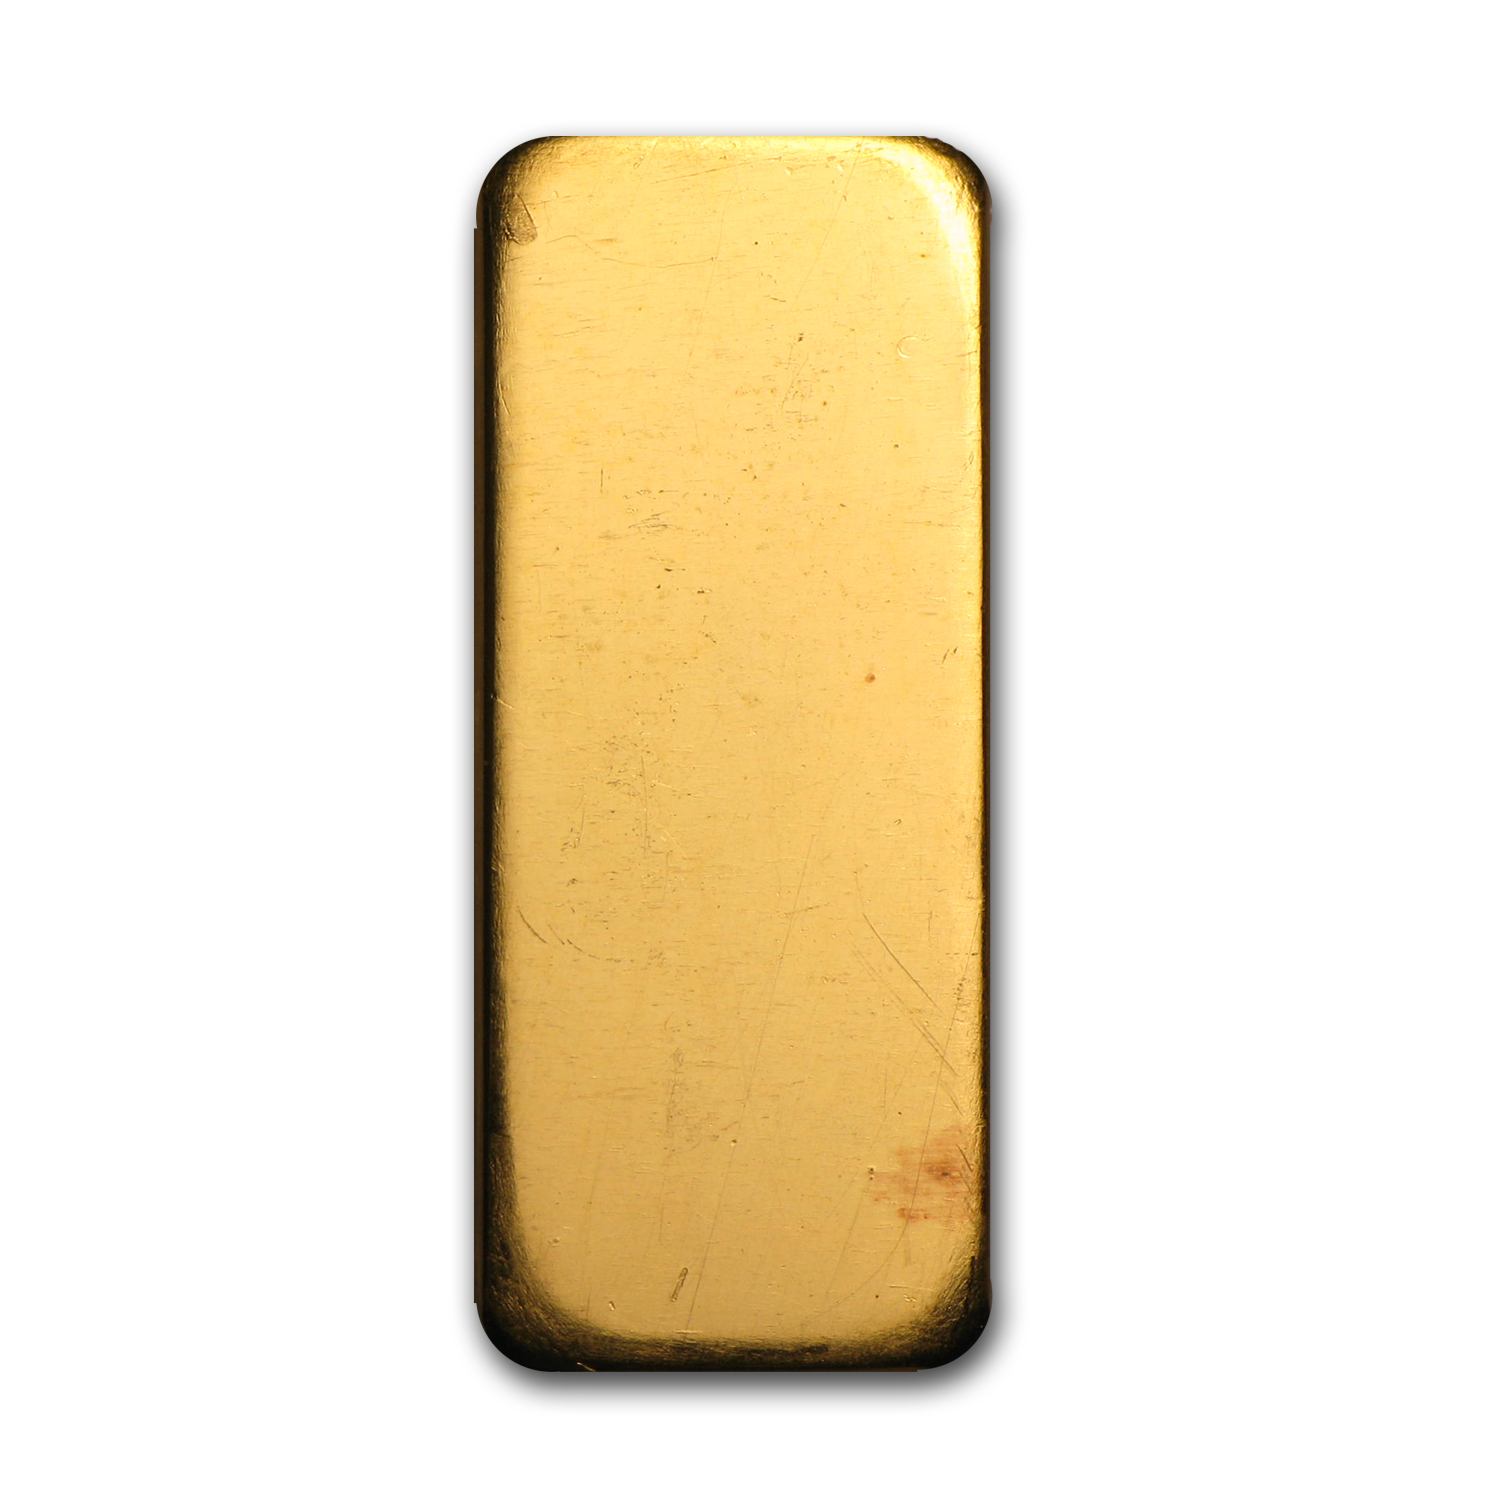 10 gram Gold Bars - Degussa (Stamped)